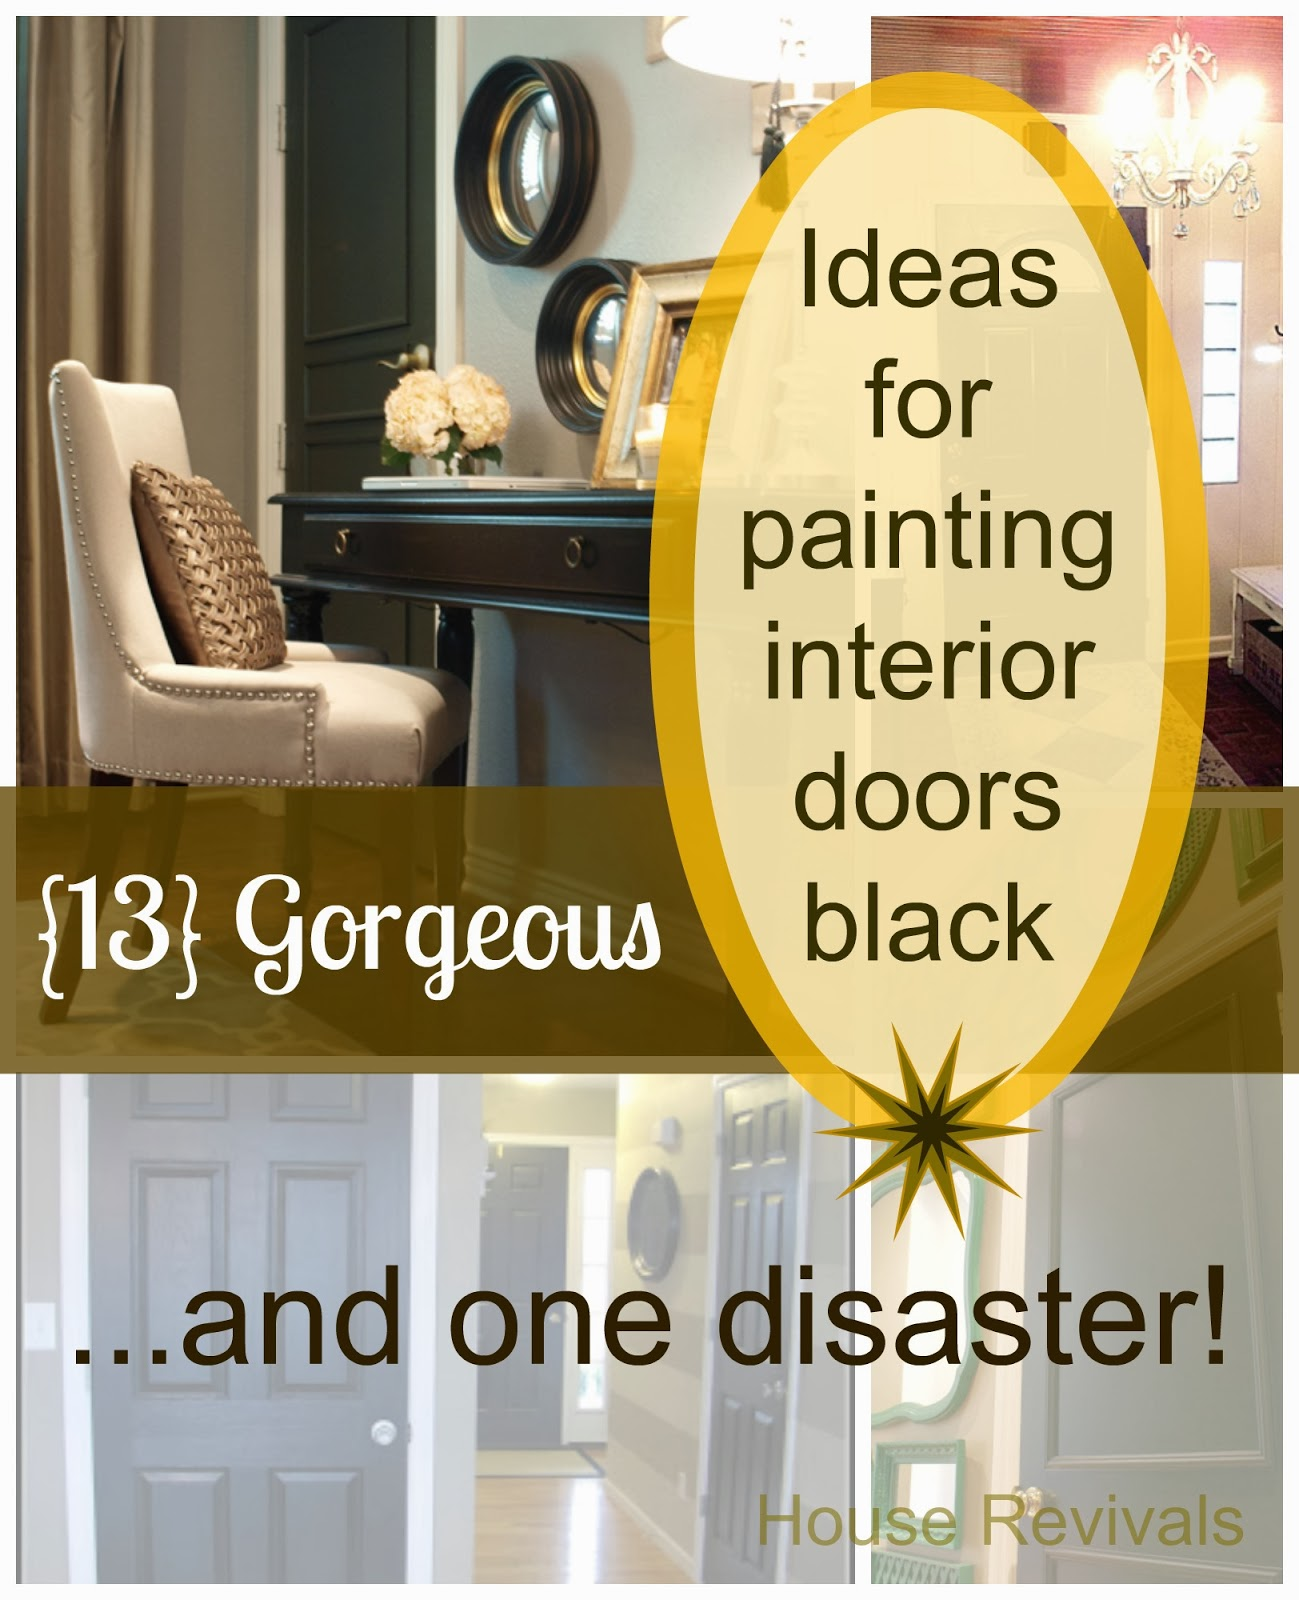 Painting Doors Black Can Be Just The Right Thing To Add A